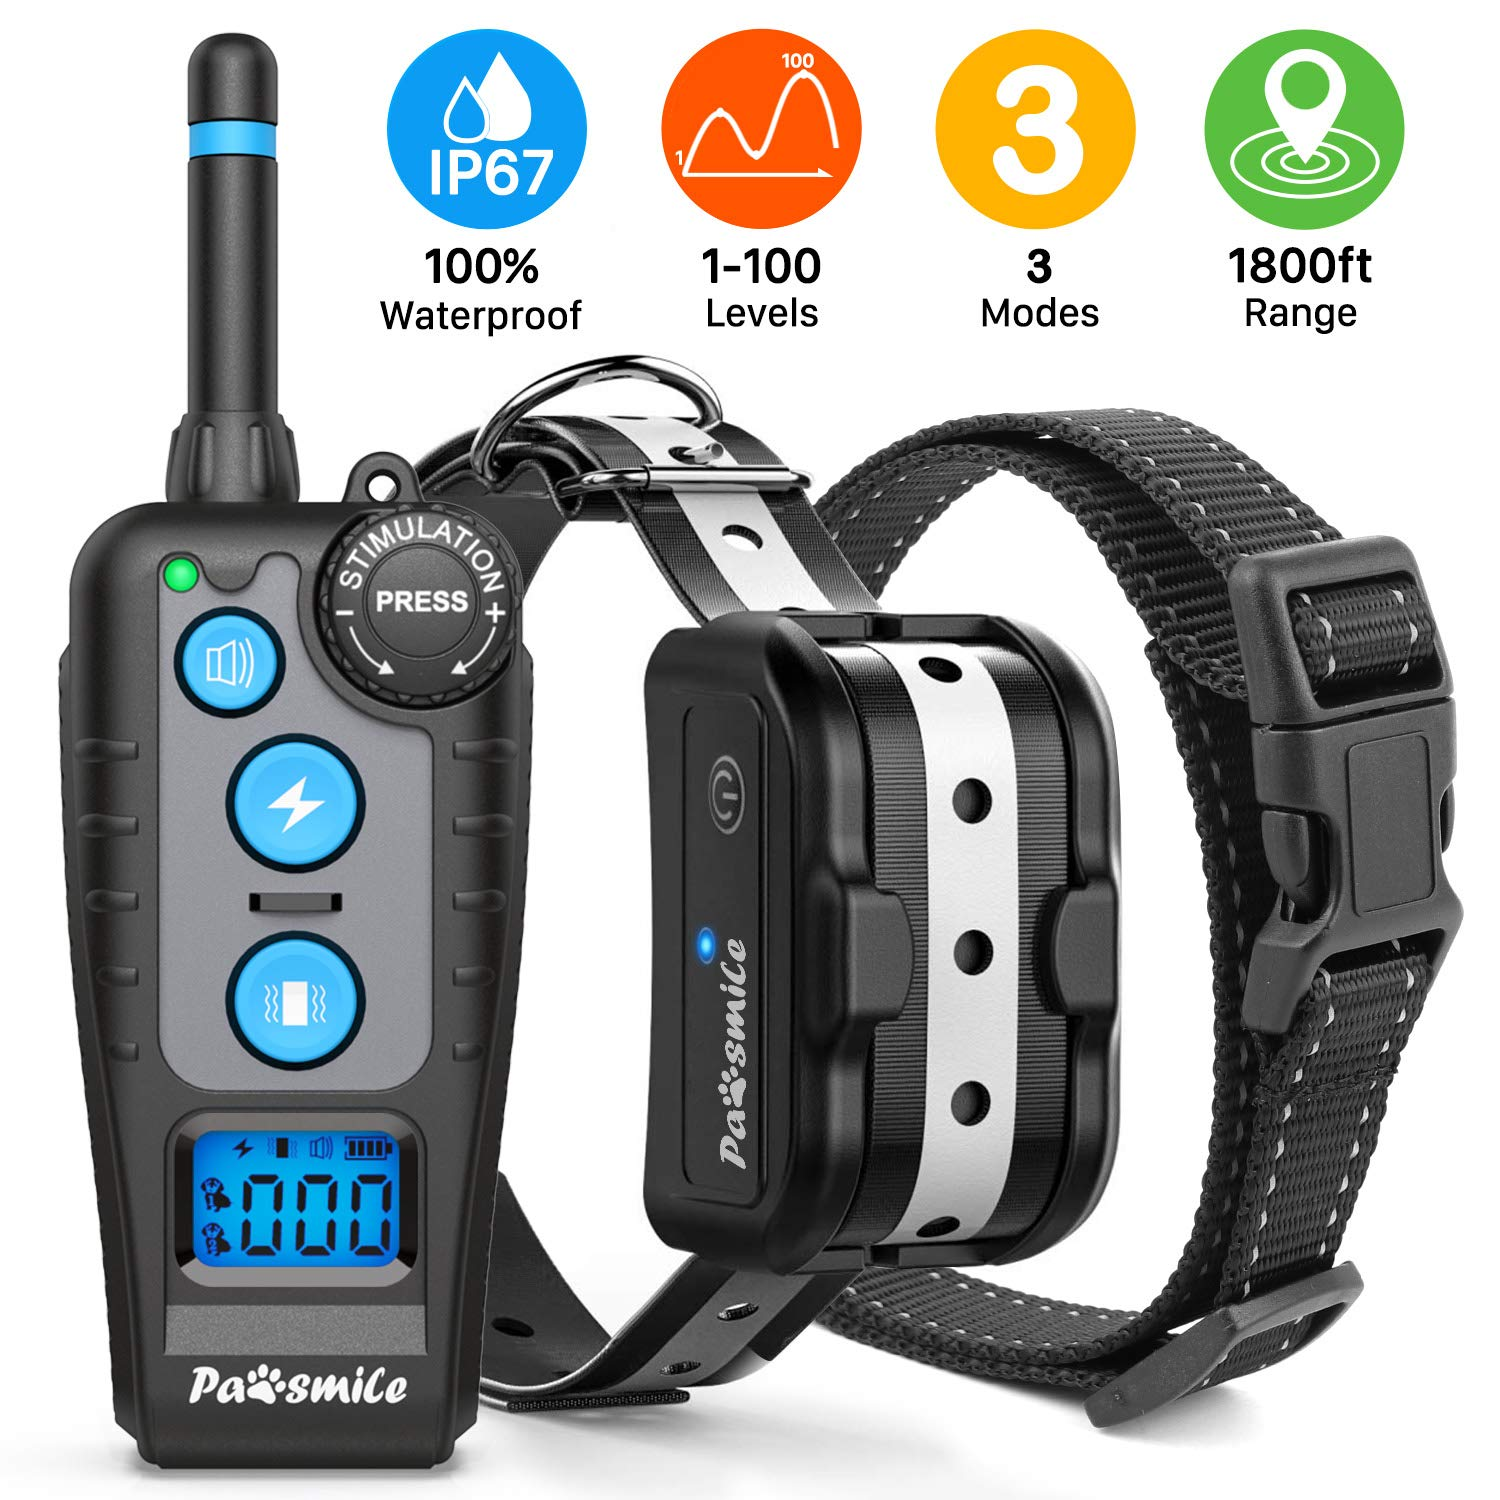 Dog Training Collar with Remote, Rechargeable Dog Shock Collar with 3 Training Modes, Beep, Vibration and Shock 1-100 Levels, 100% Waterproof 1800ft Shock Collar for Dogs Small, Medium and Large Size by Pawsmile